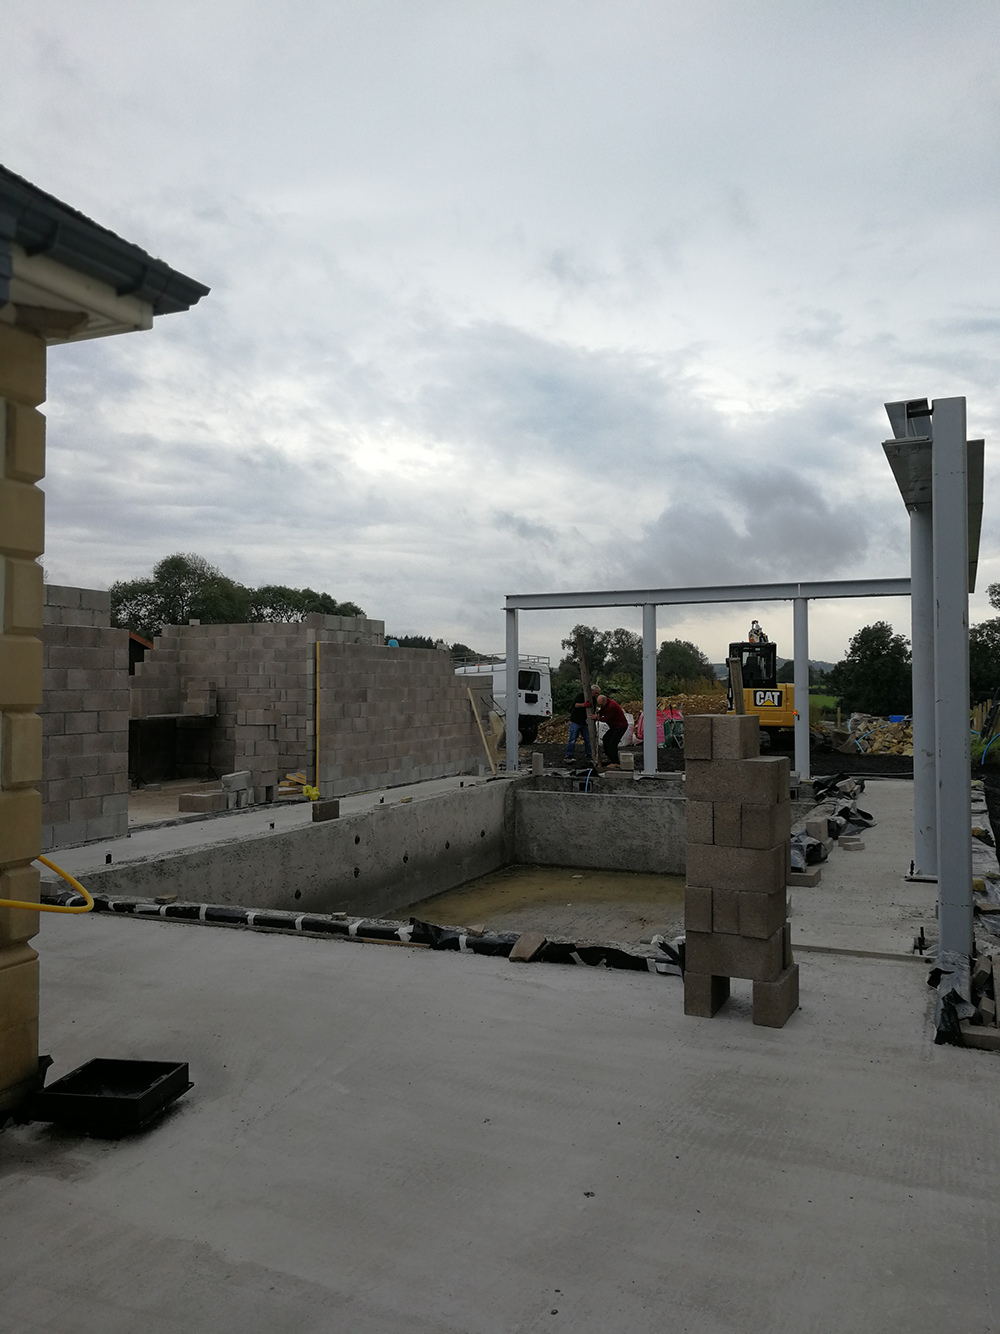 A photo of the pool area being dug up, with the build underway.